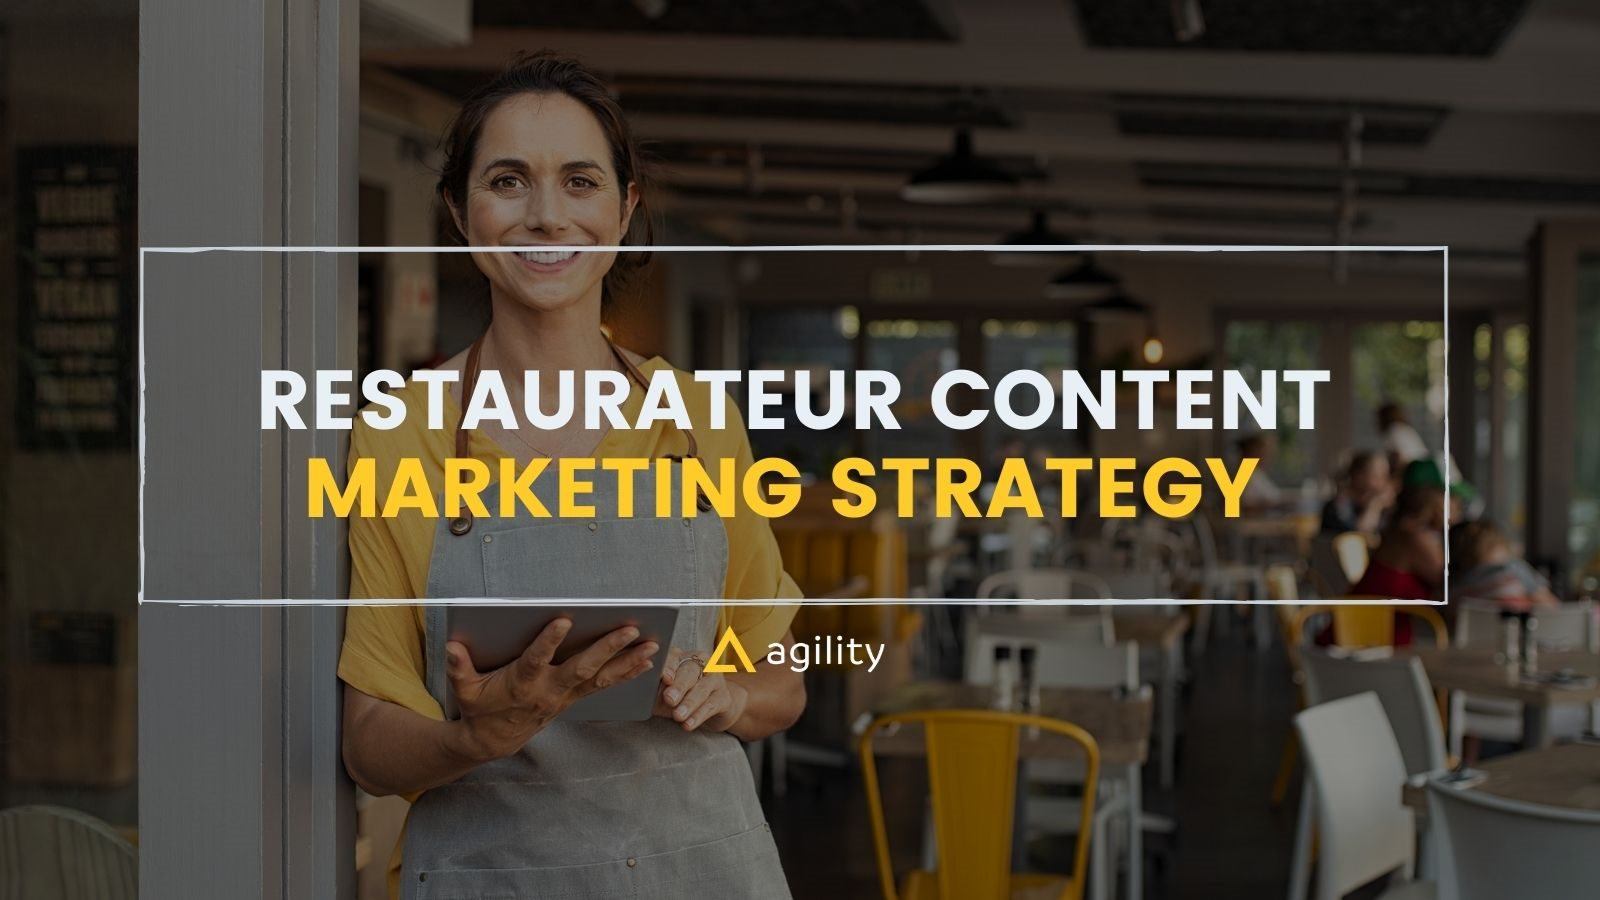 Restaurateur Content Marketing Strategy on agilitycms.com